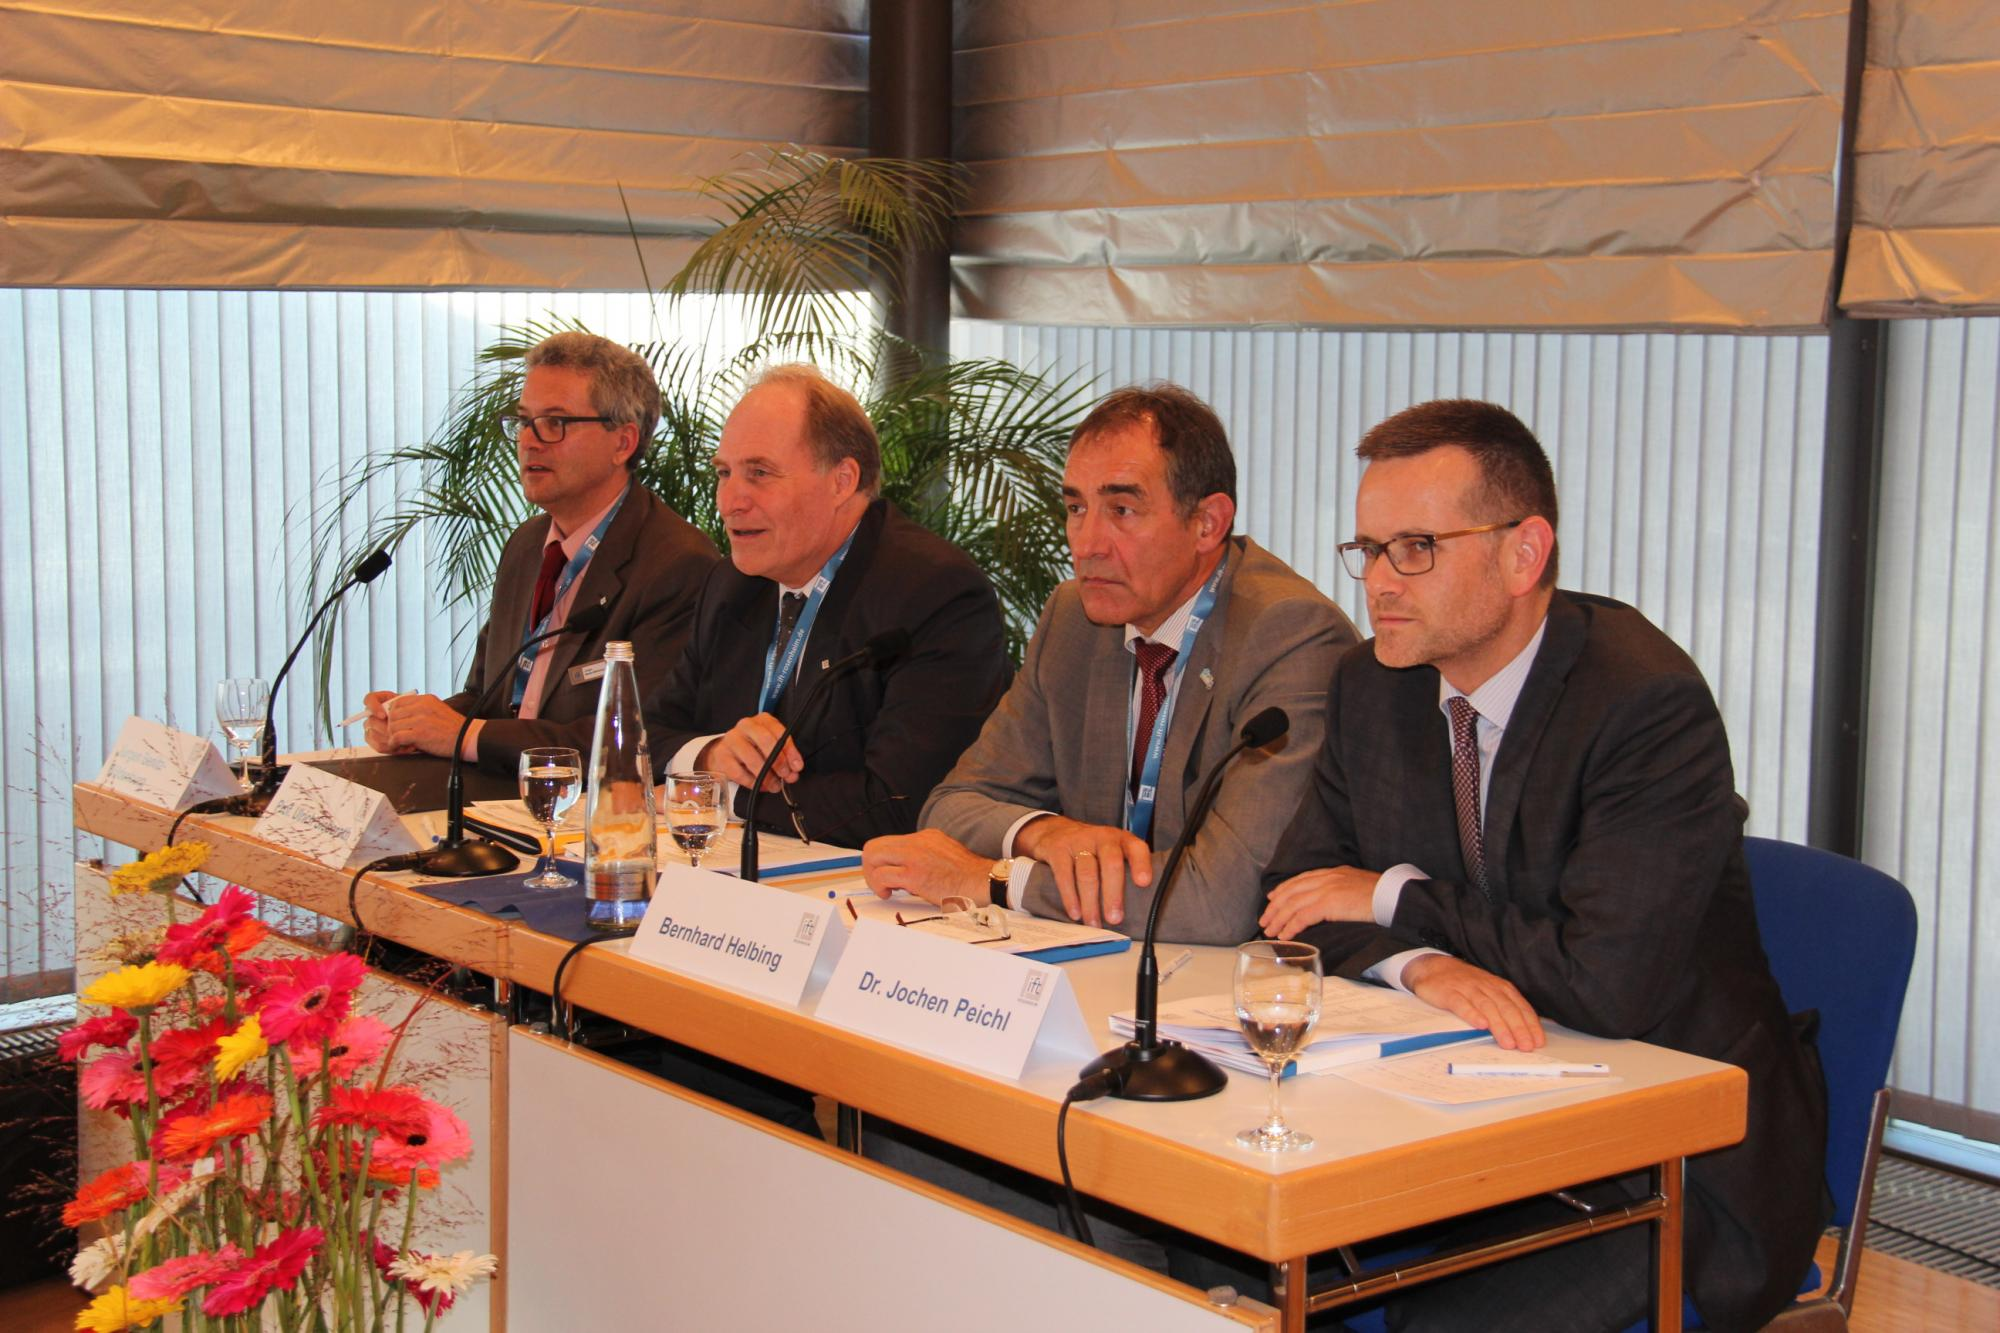 The Chairman and the Institute Management reporting to 35 domestic and foreign journalists about the activities of ift Rosenheim and current industry trends. (from left to right: Jürgen Benitz-Wildenburg, Prof. Ulrich Sieberath, Bernhard Helbing, Dr. Jochen Peichl) (Source: ift Rosenheim)